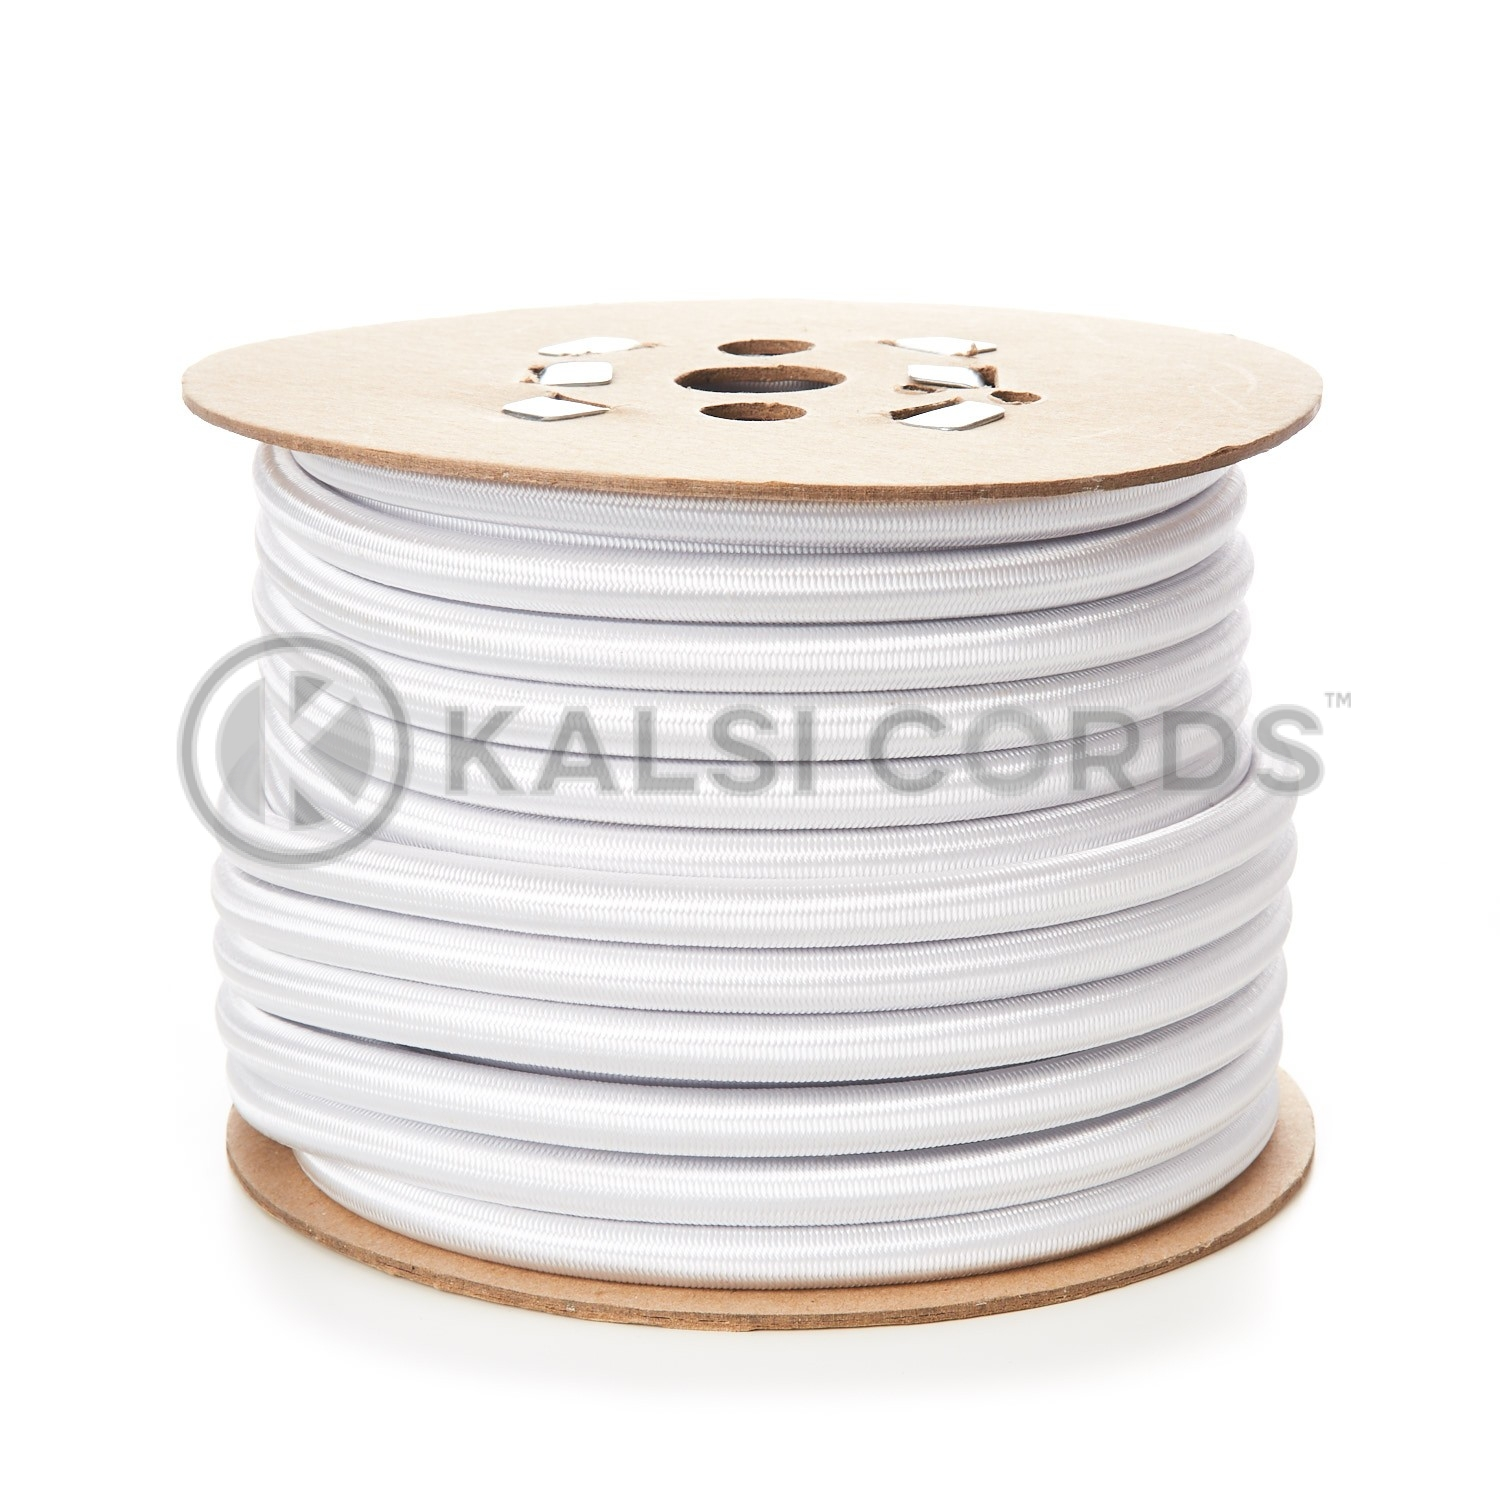 12mm White Round Elastic Bungee Shock Cord by Kalsi Cords